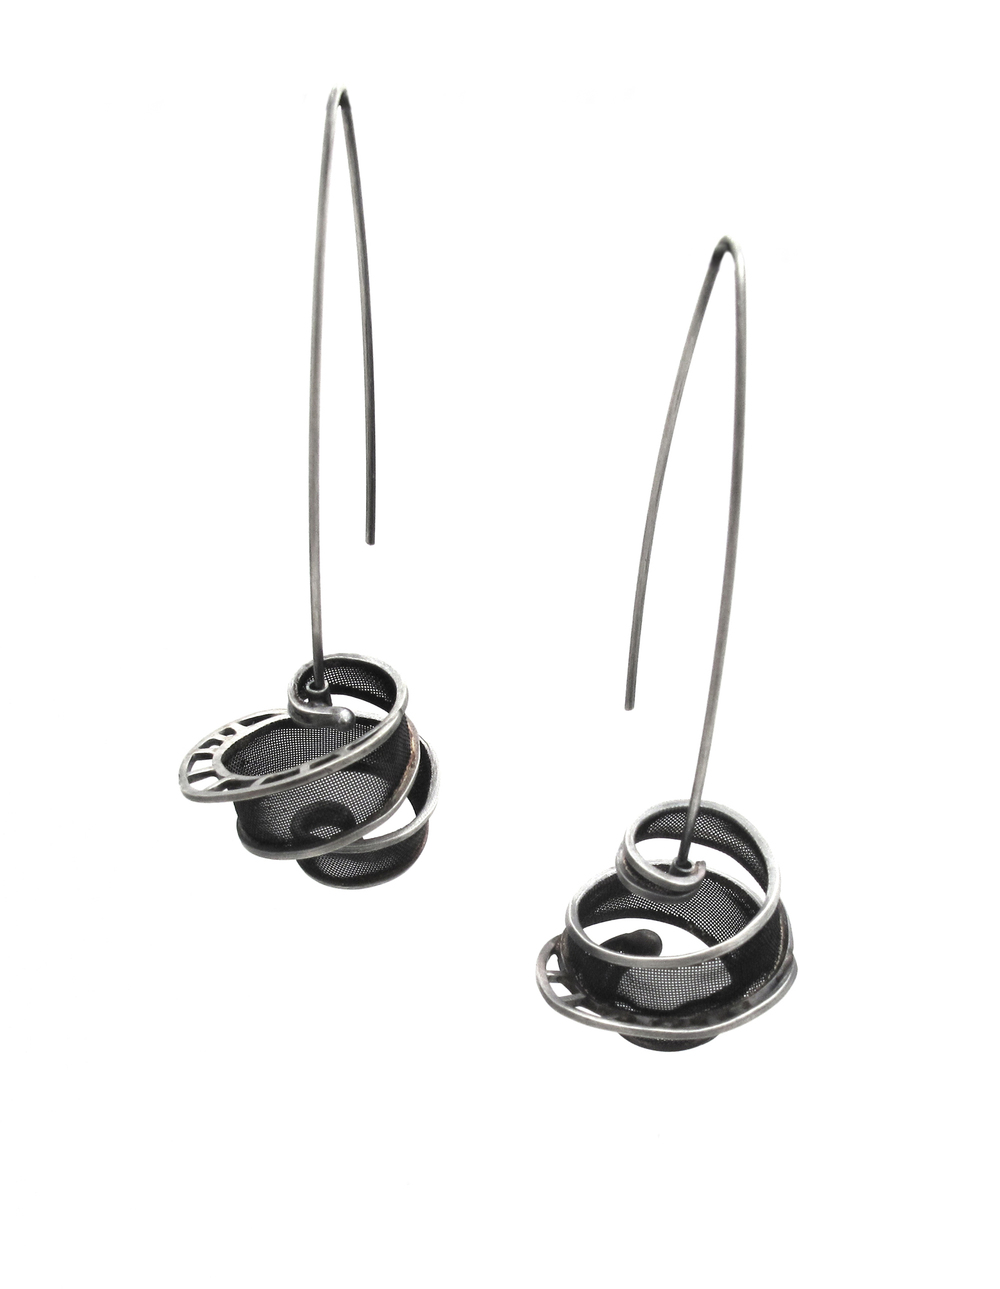 E5 Sellers, Caitie ball earrings on long wires silver and copper.jpg